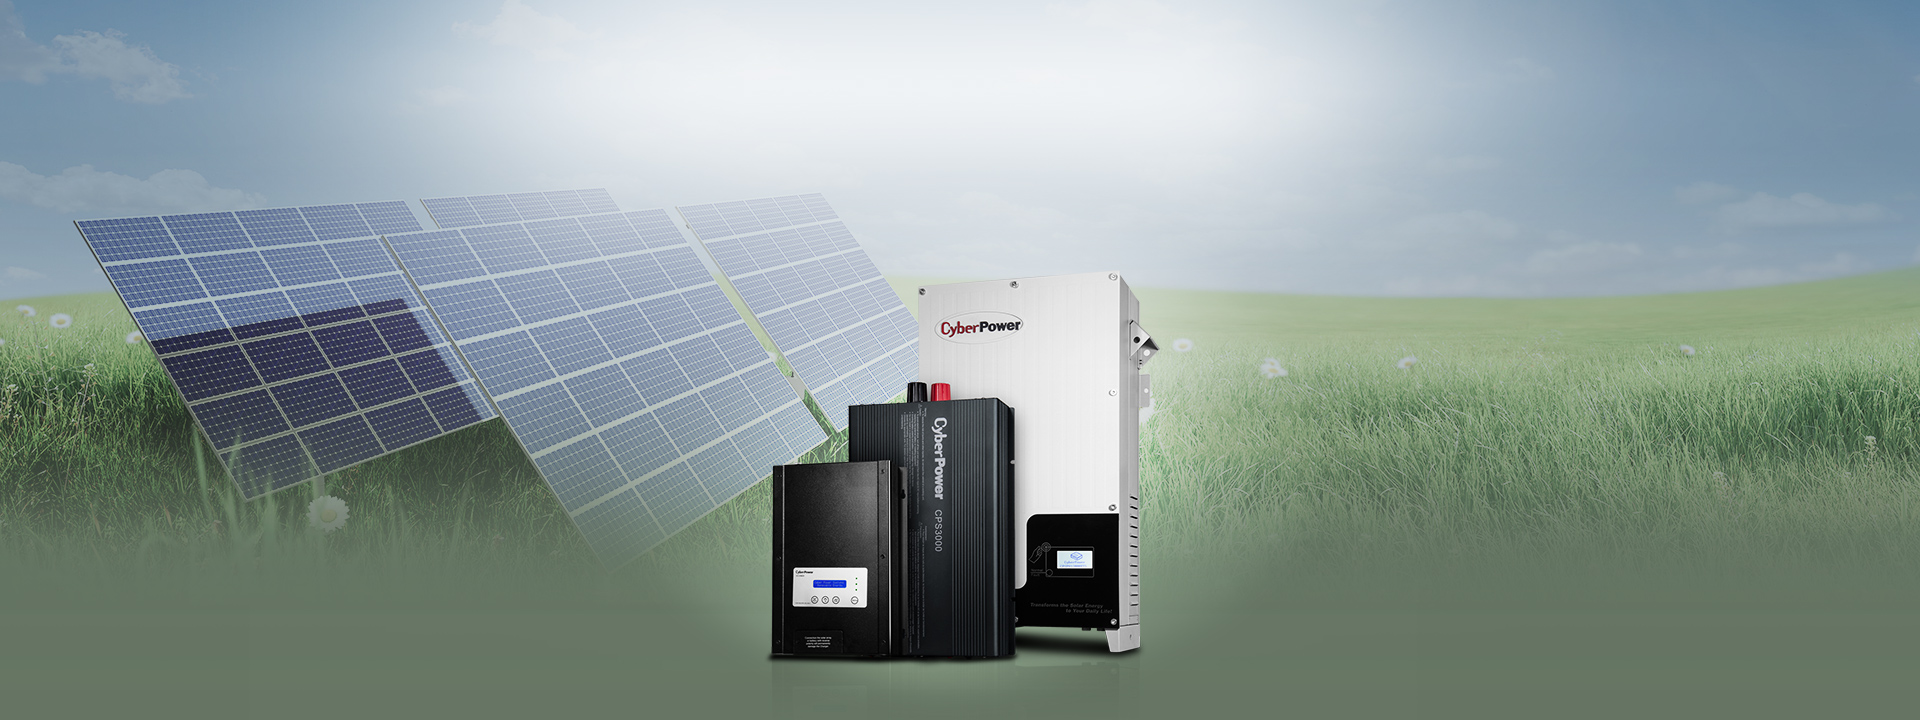 CyberPower's Solar Power System is the perfect renewable solar power solution with MPPT techology for immediate use